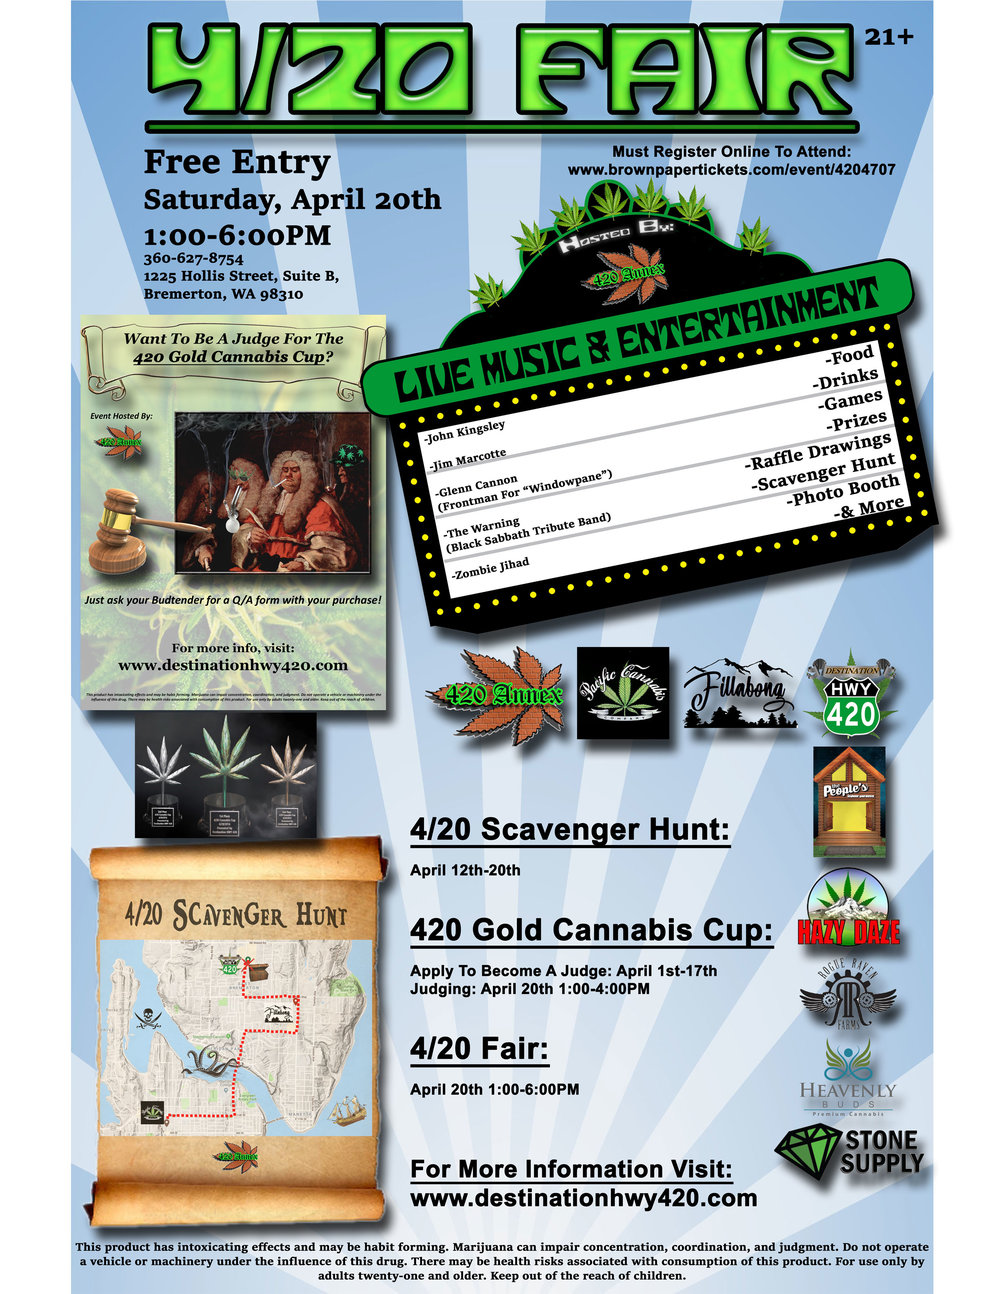 The 4/20 Fair, held in East Bremerton every year, is hosted by the 420 Annex. For 4/20/2019, the Fair will be bigger and better than ever! Join us and the rest of your Best Buds for food, drinks, live music, games, prizes, raffle drawings, scavenger hunts, photo booths, and more. We hope you'll be joining us and the rest of the Kitsap Cannabis Community for this special Cannabis Culture Holiday.